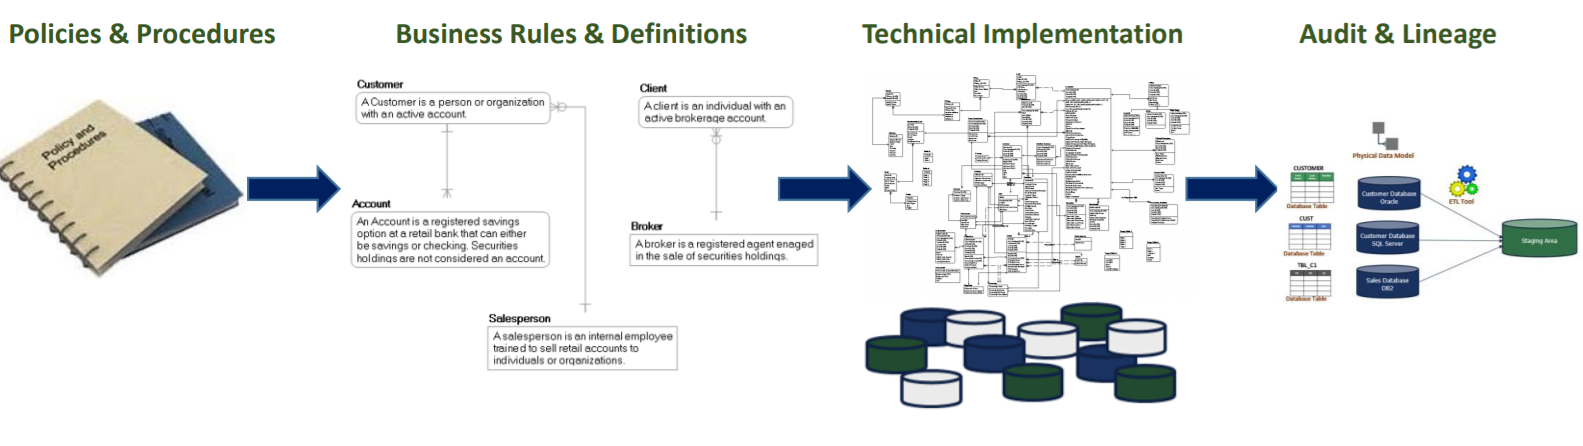 Data models translate business rules defined in policies into an actionable technical data system